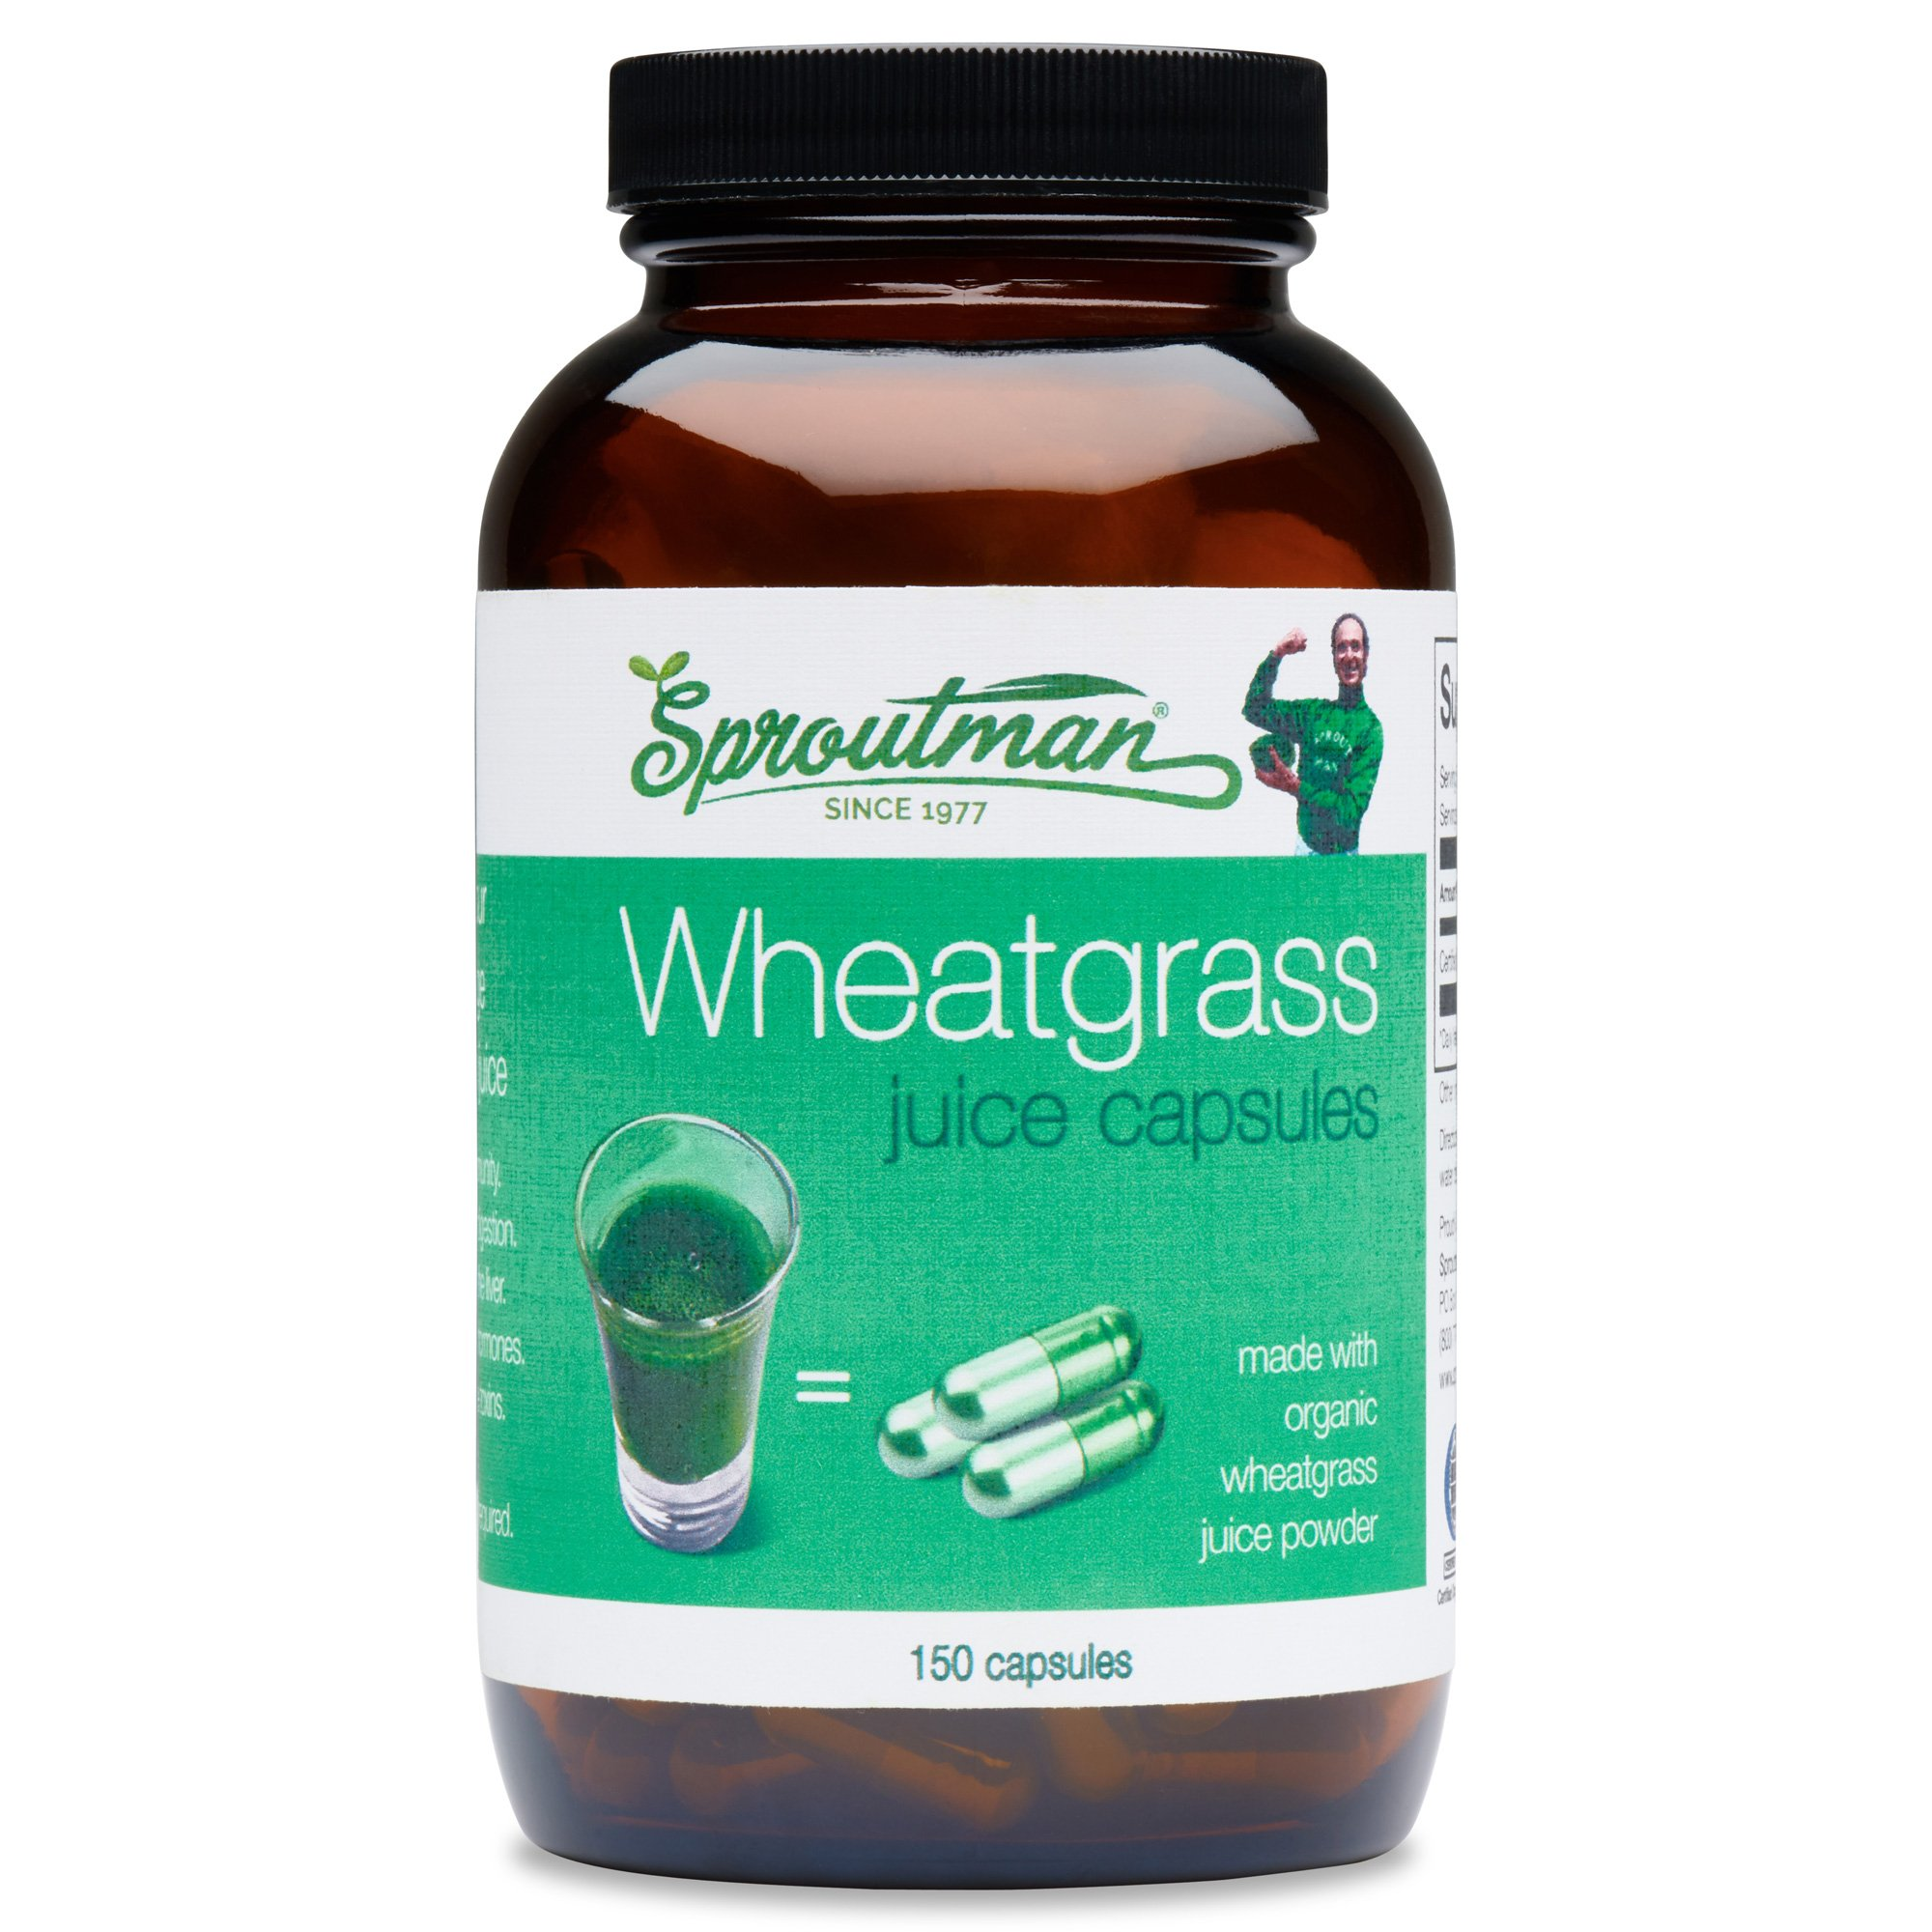 Organic Wheatgrass Juice Powder Capsules by Sproutman - 100% Pure Wheatgrass- Boosts Metabolism, Aids Digestion - High in Vitamins, Antioxidants, Chlorophyll, Enzymes, Minerals & Energy (150 Pills) by Sproutman